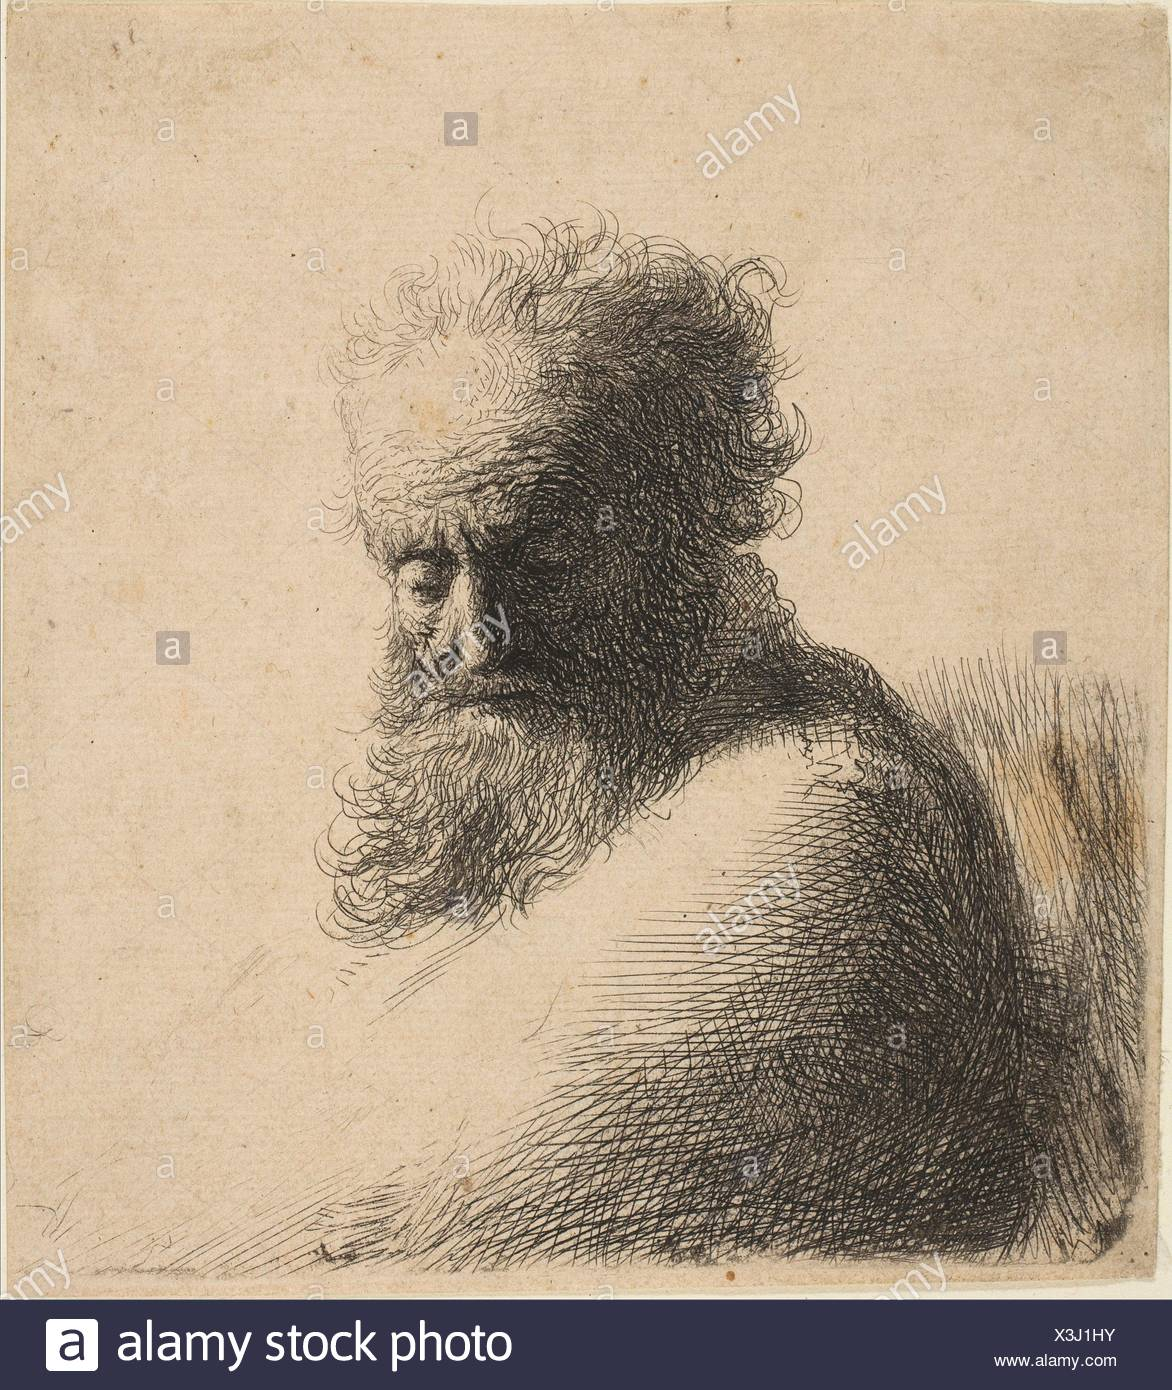 Bust Of An Old Bearded Man Looking Down Three Quarters Right Artist Rembrandt Rembrandt Van Rijn Dutch Leiden 1606 1669 Amsterdam Date Stock Photo Alamy